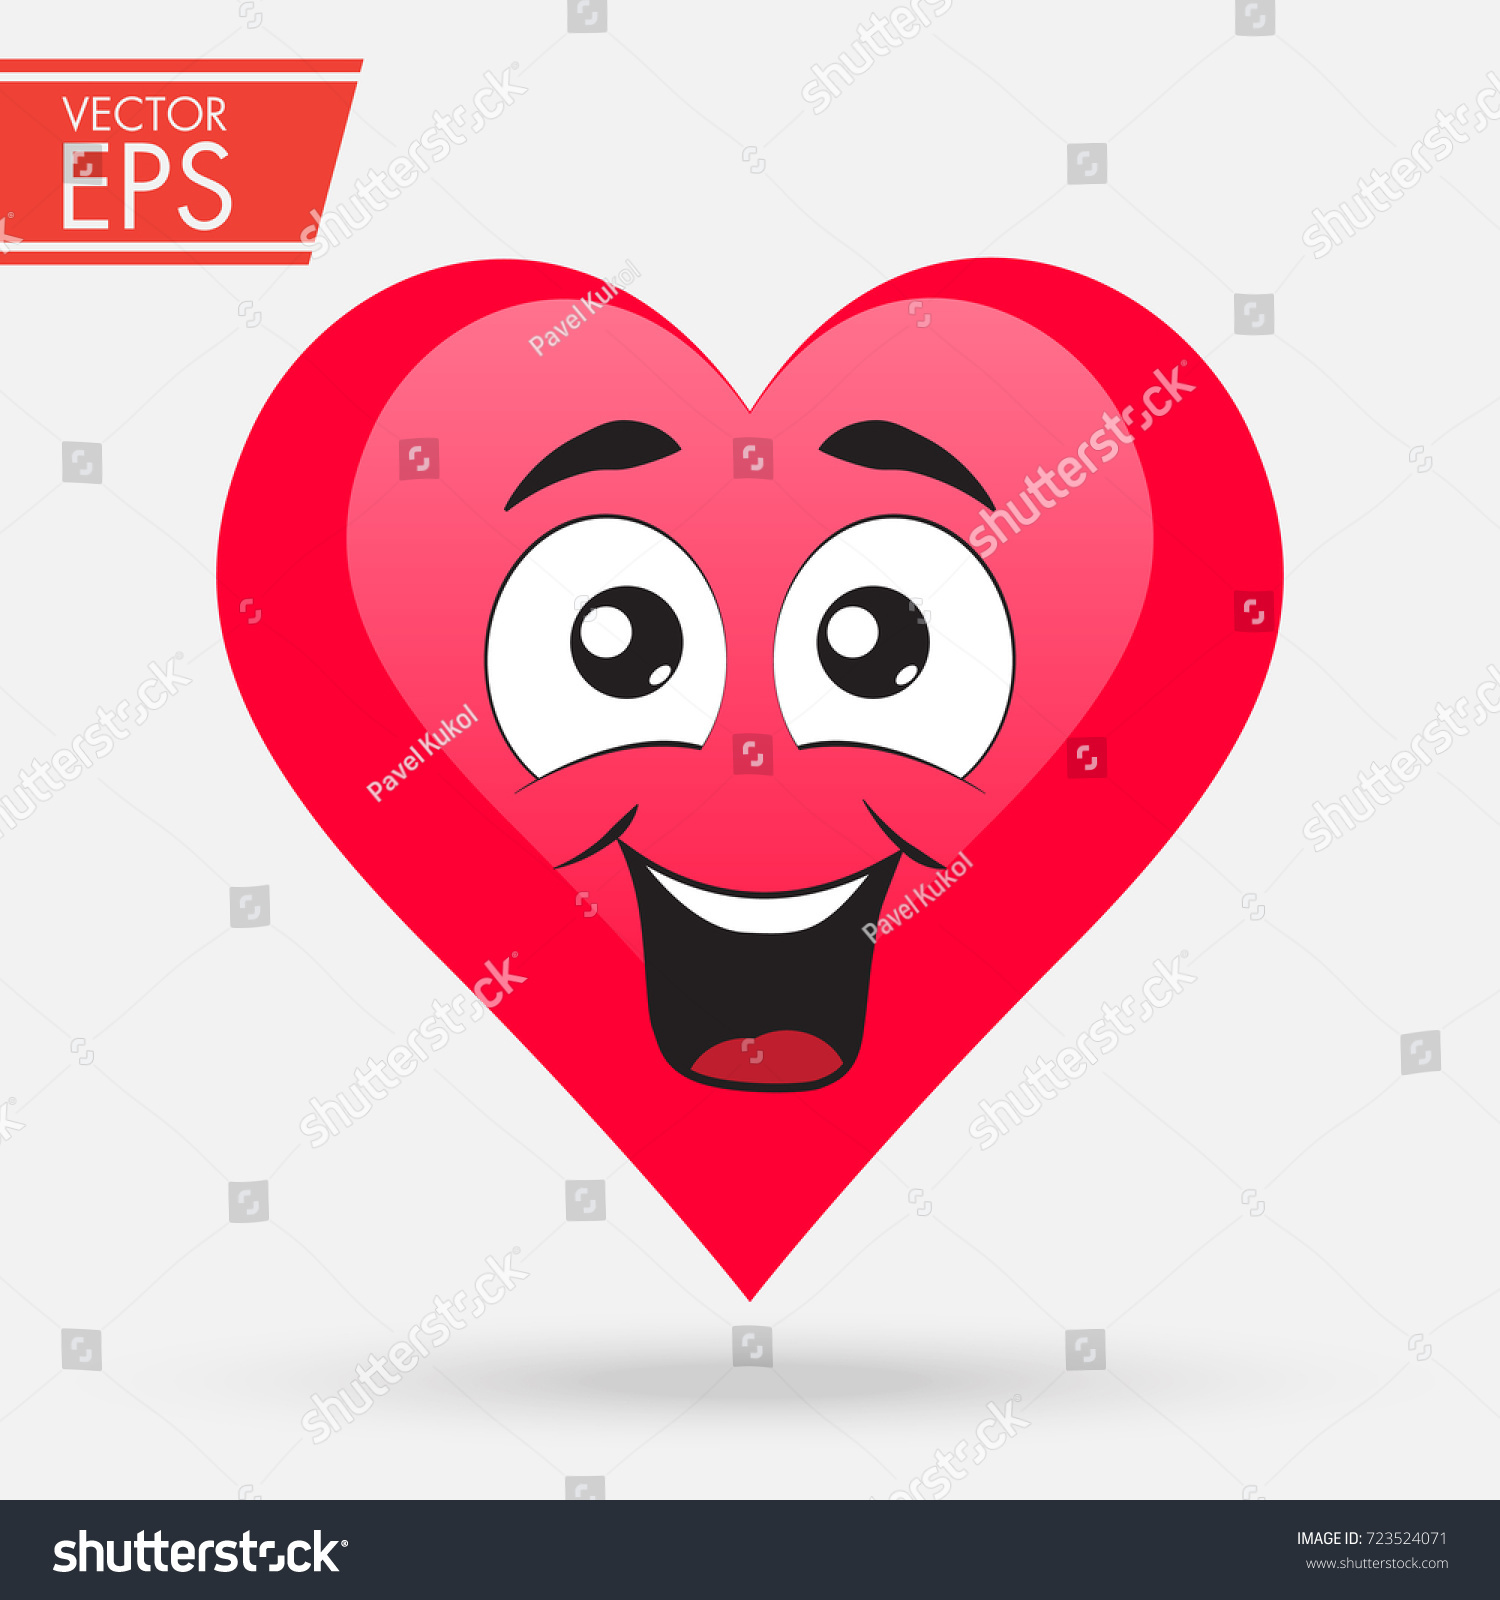 Valentines Day Heart Cute Love Cartoon Stock-Vektorgrafik ...